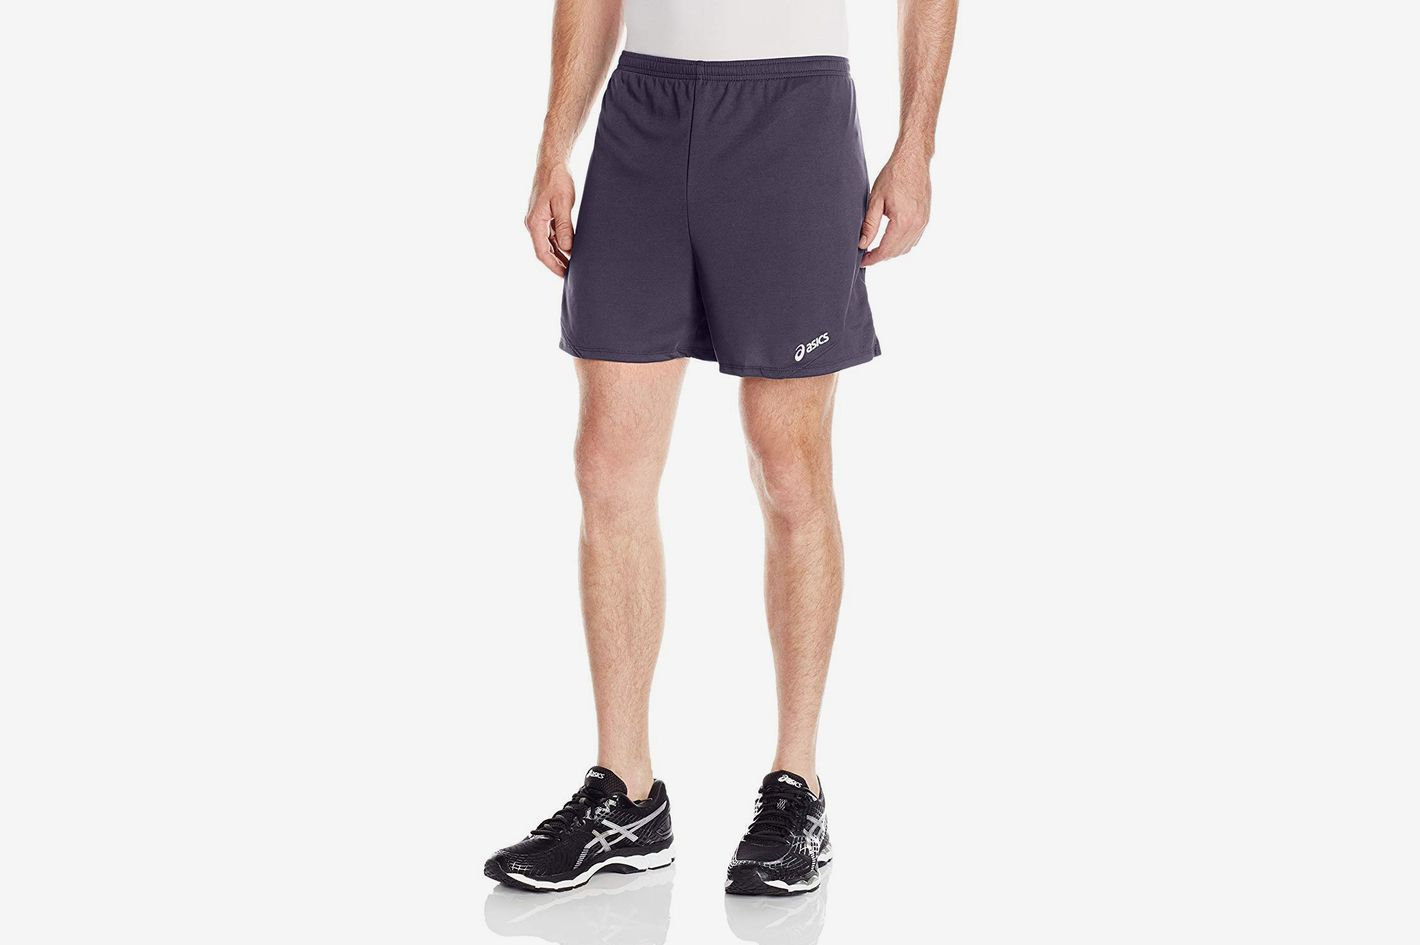 44e247210b 10 Best Running Shorts for Men 2018